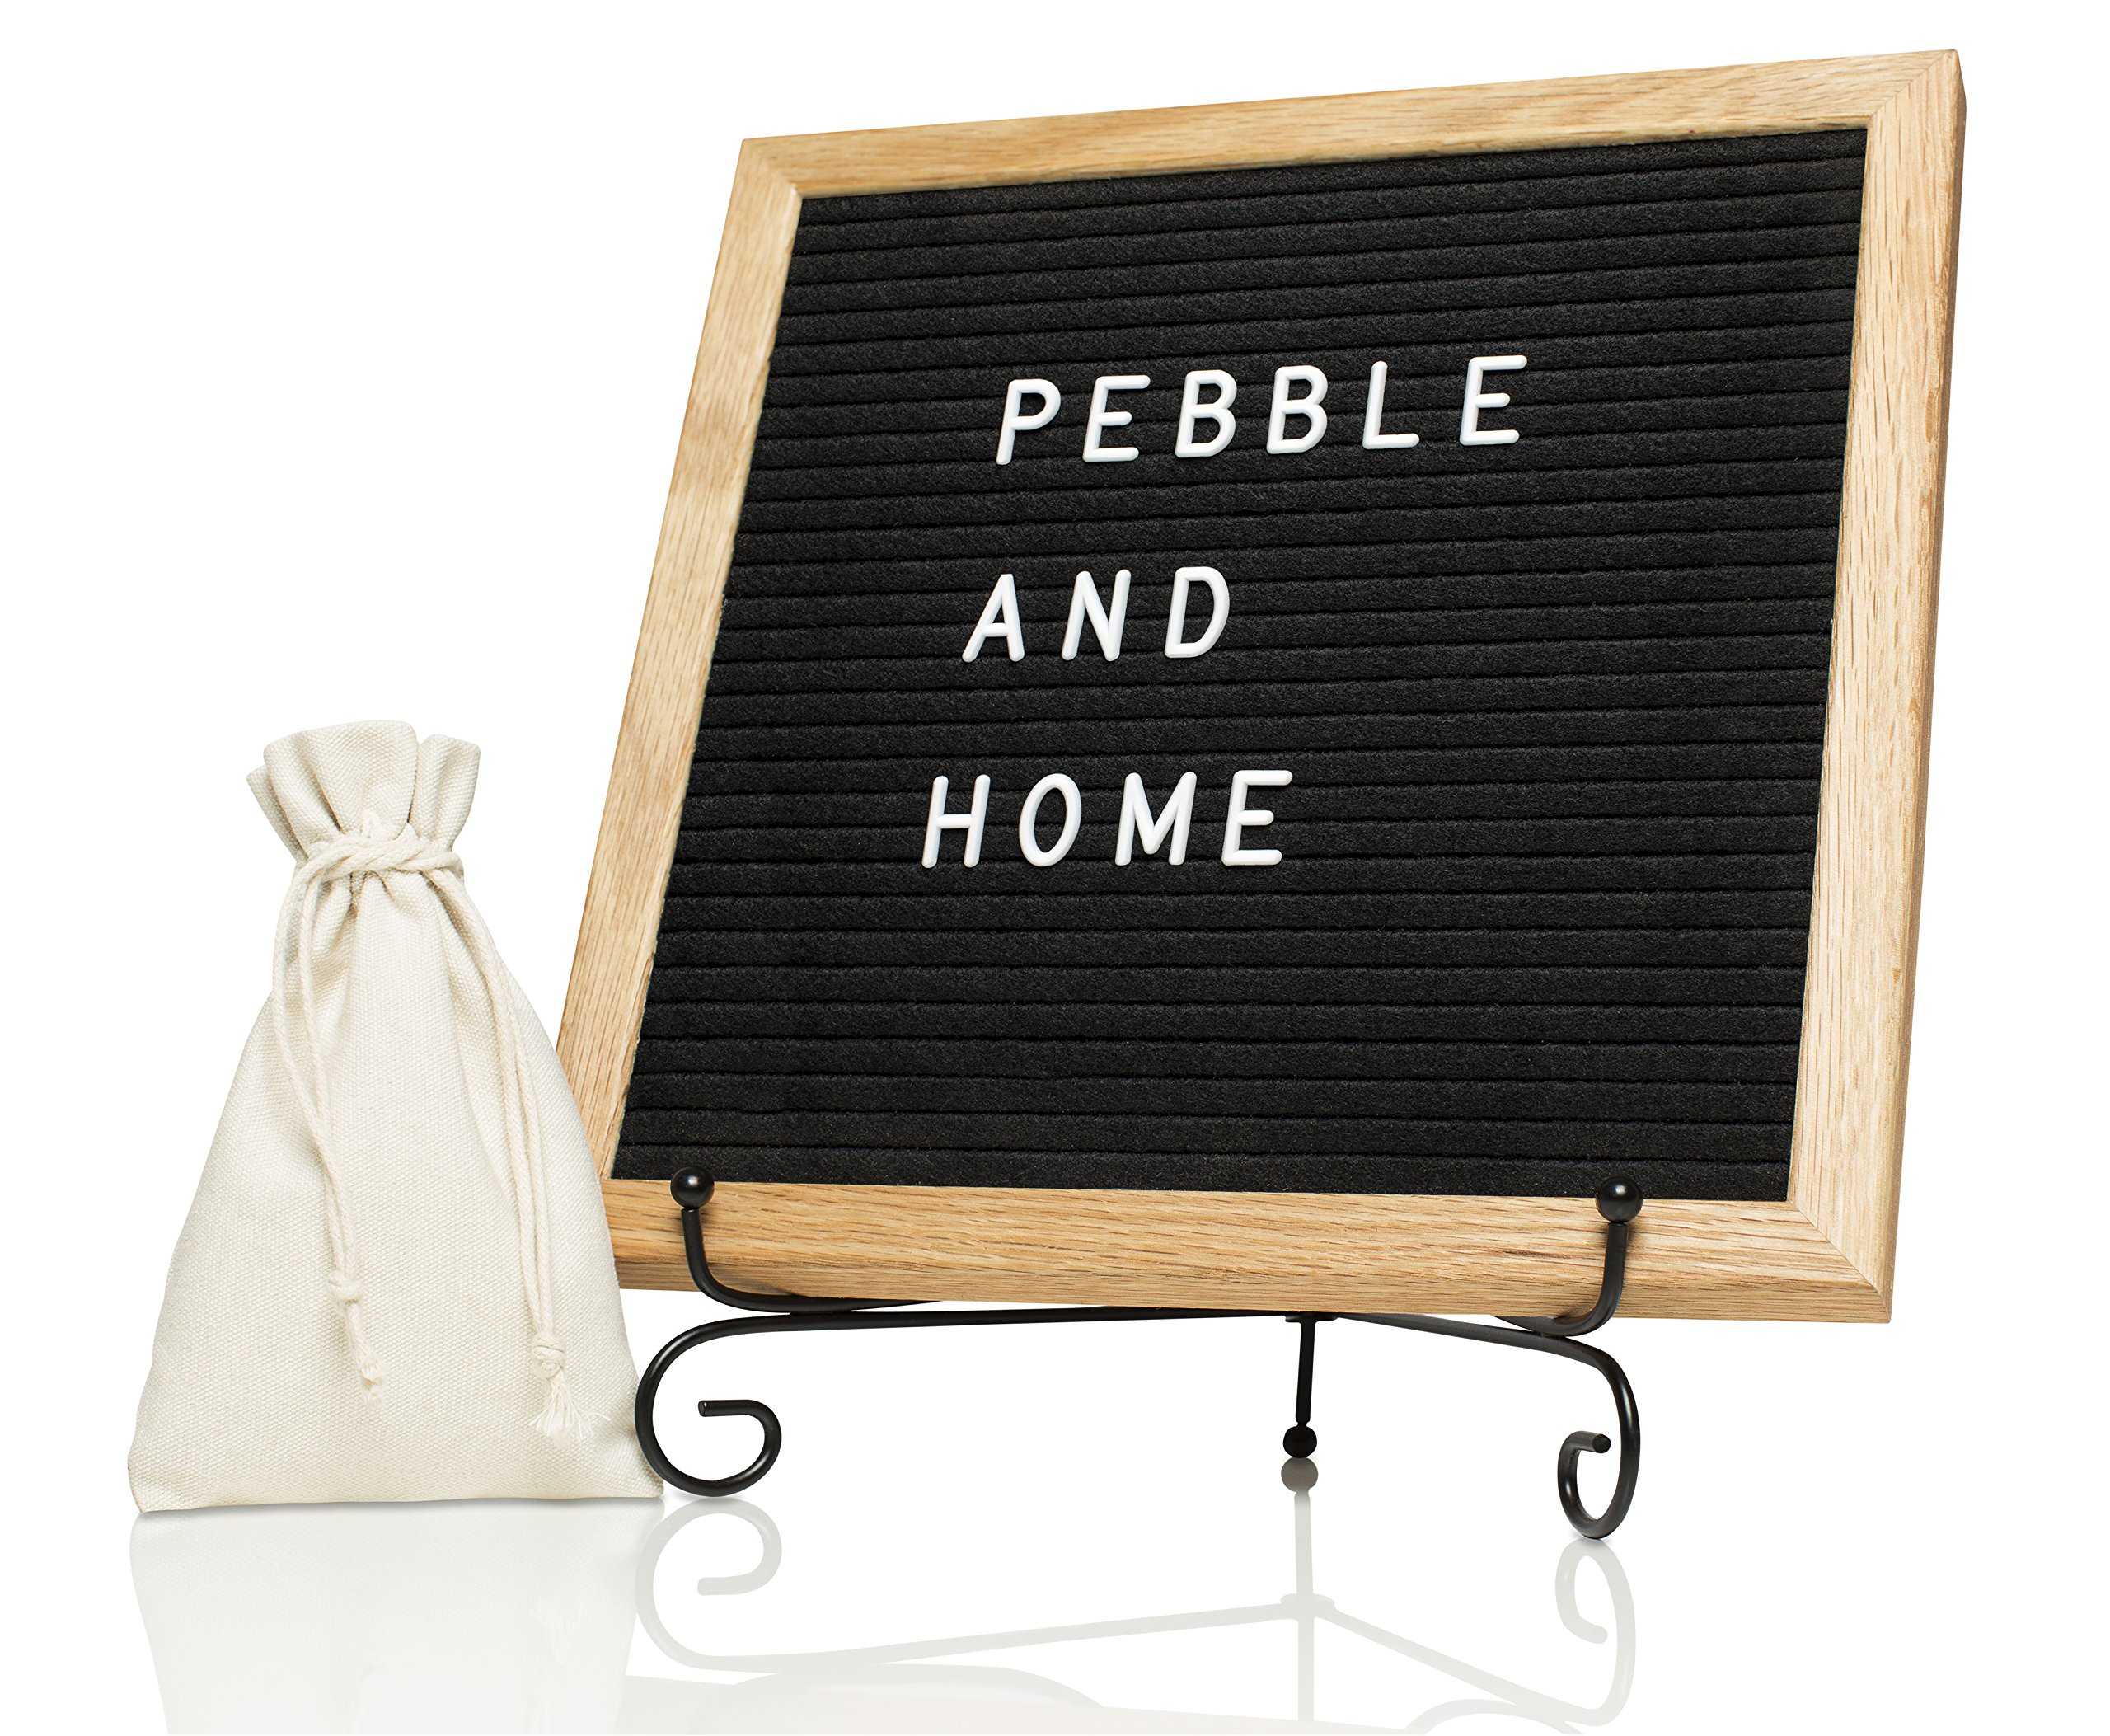 Black Changeable Felt Letter Board - 10x10 Inches with Oak Frame, Metal Stand, Wall Mount, Canvas Bag, 335 White Letters, Numbers & Symbols